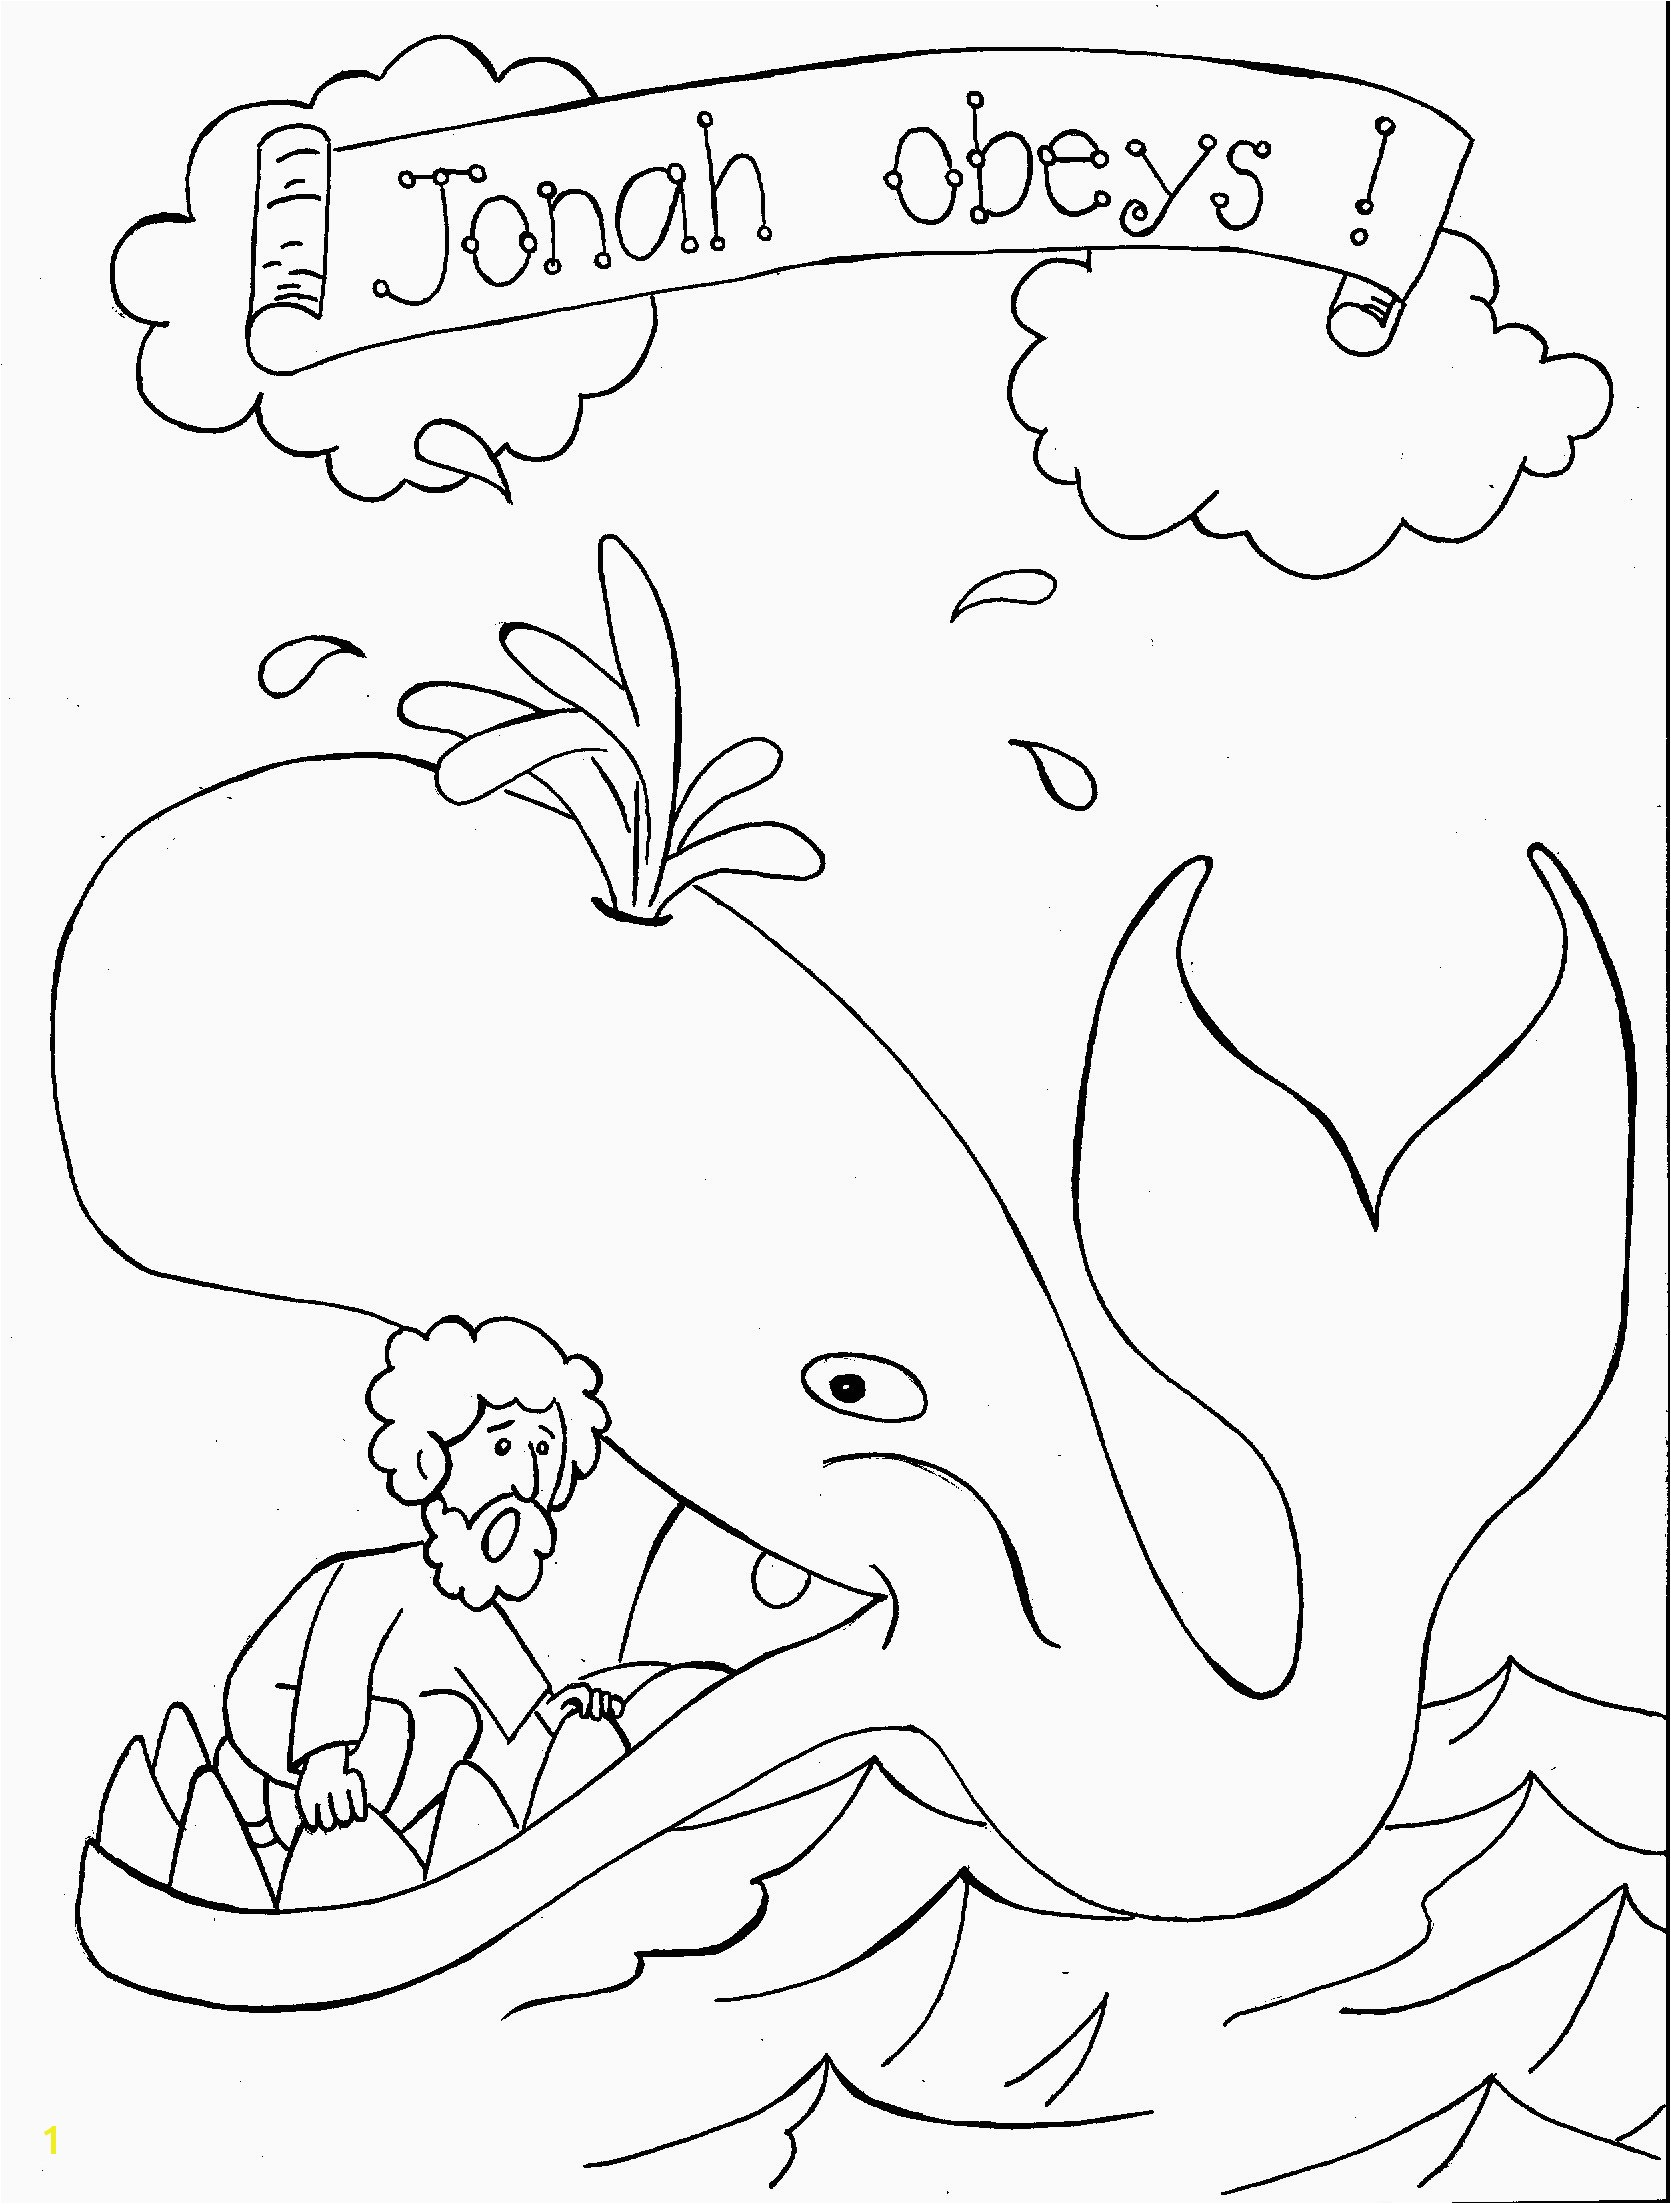 Bible Story Coloring Sheets for Preschoolers Awesome Bible Coloring Pages for Adults Best Best Od Dog